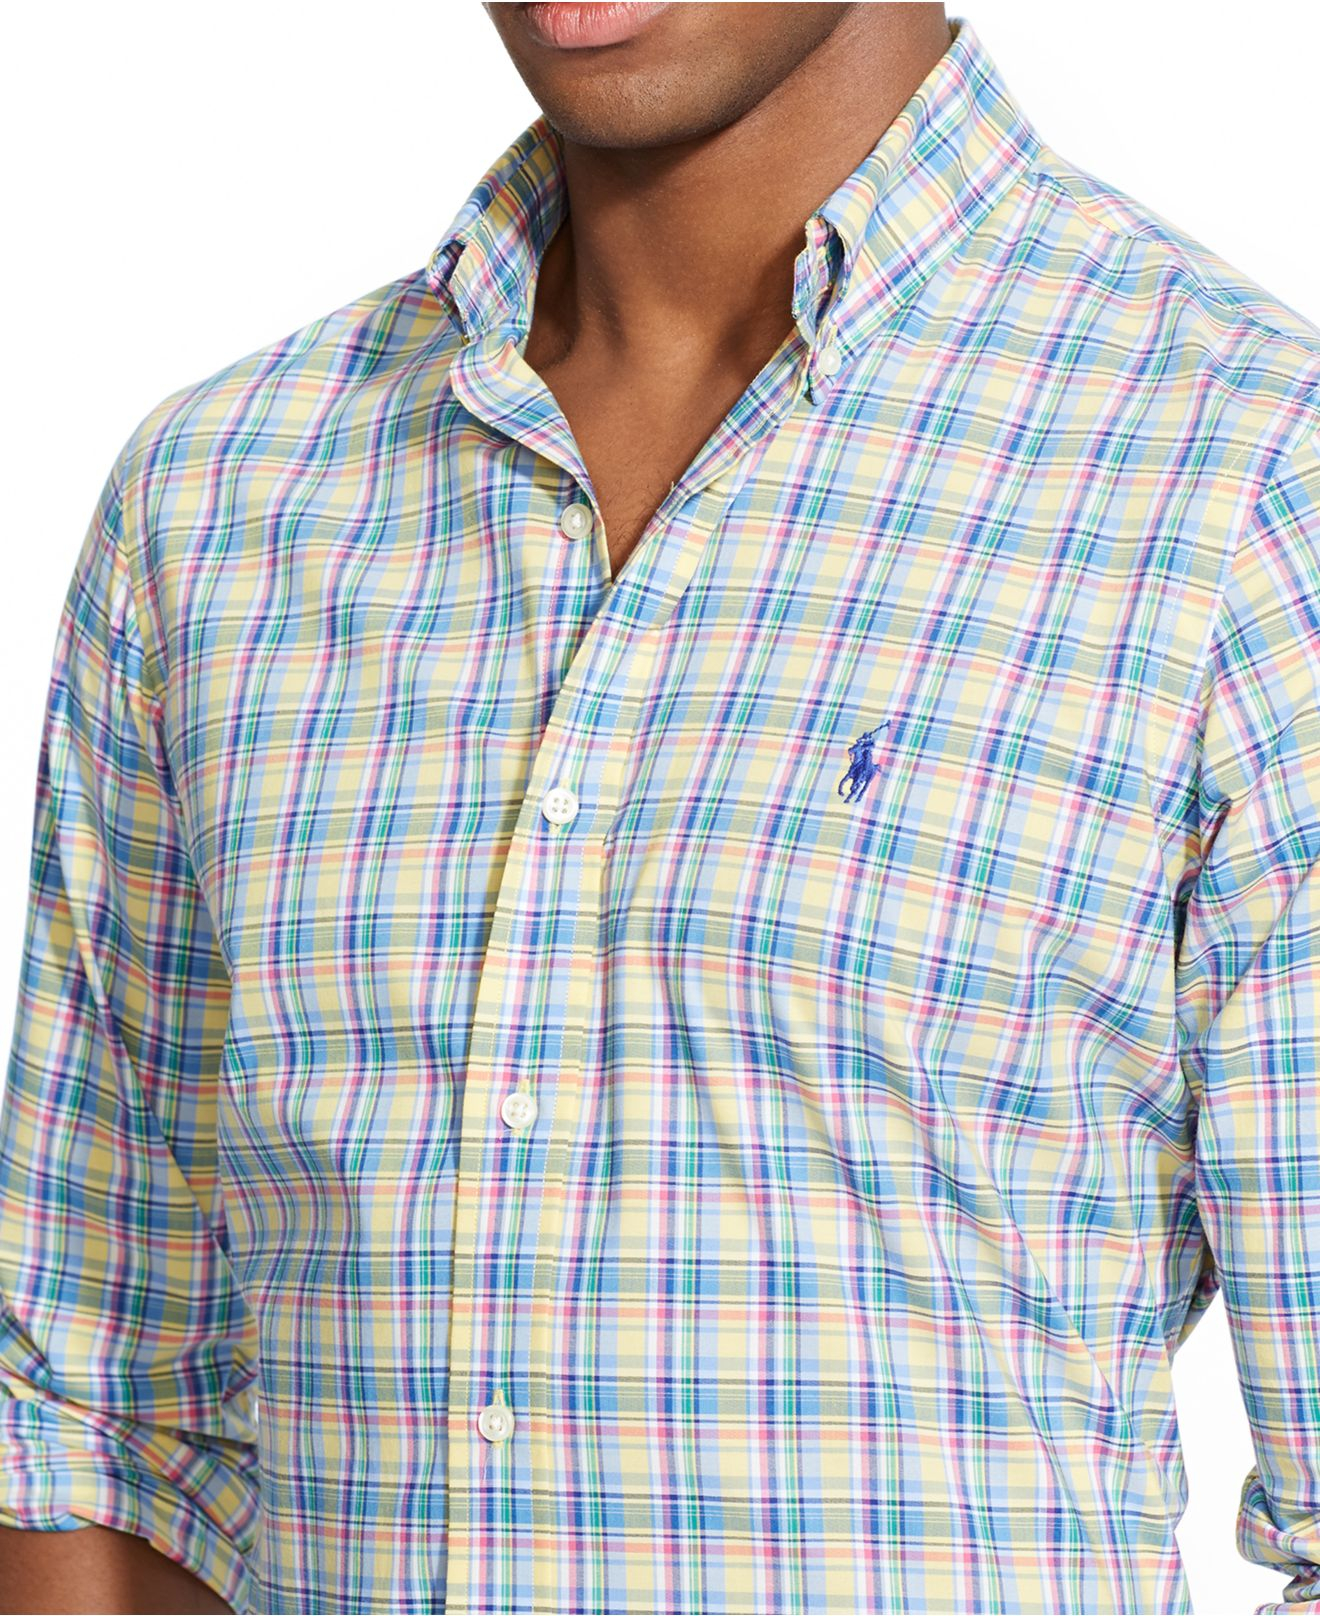 6b6a74655 real gallery. previously sold at macys mens western shirts mens ralph lauren  9d816 5cc71